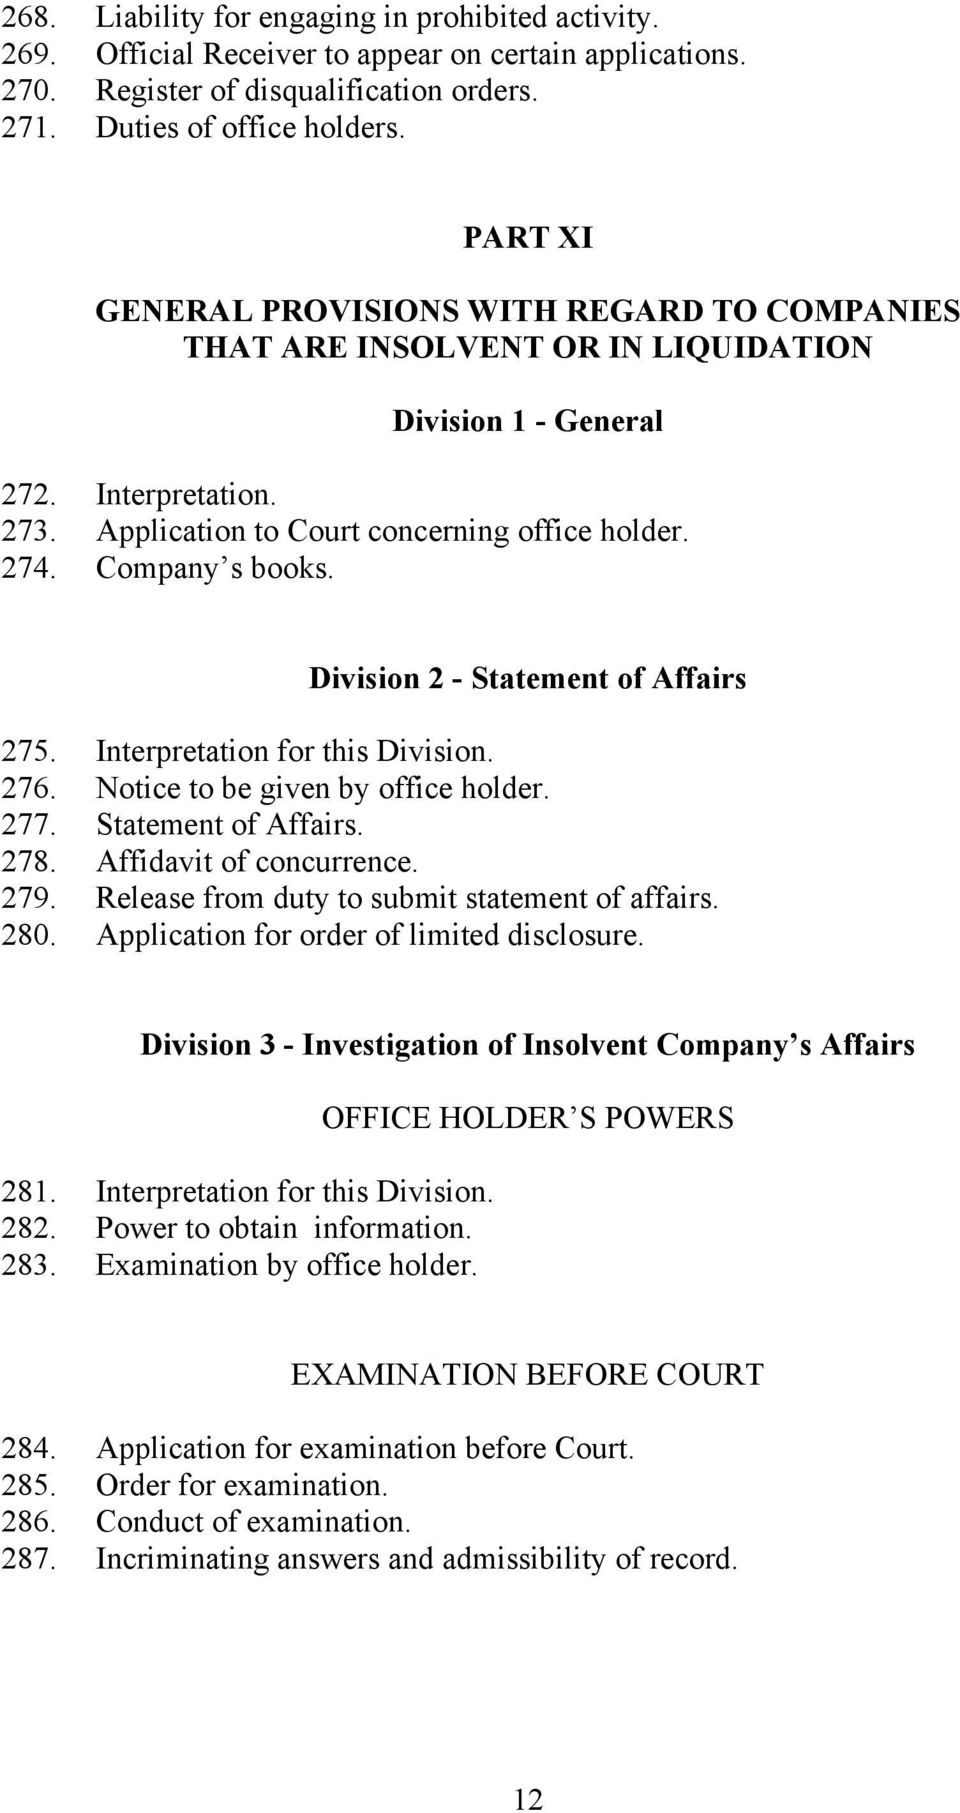 Company s books. Division 2 - Statement of Affairs 275. Interpretation for this Division. 276. Notice to be given by office holder. 277. Statement of Affairs. 278. Affidavit of concurrence. 279.